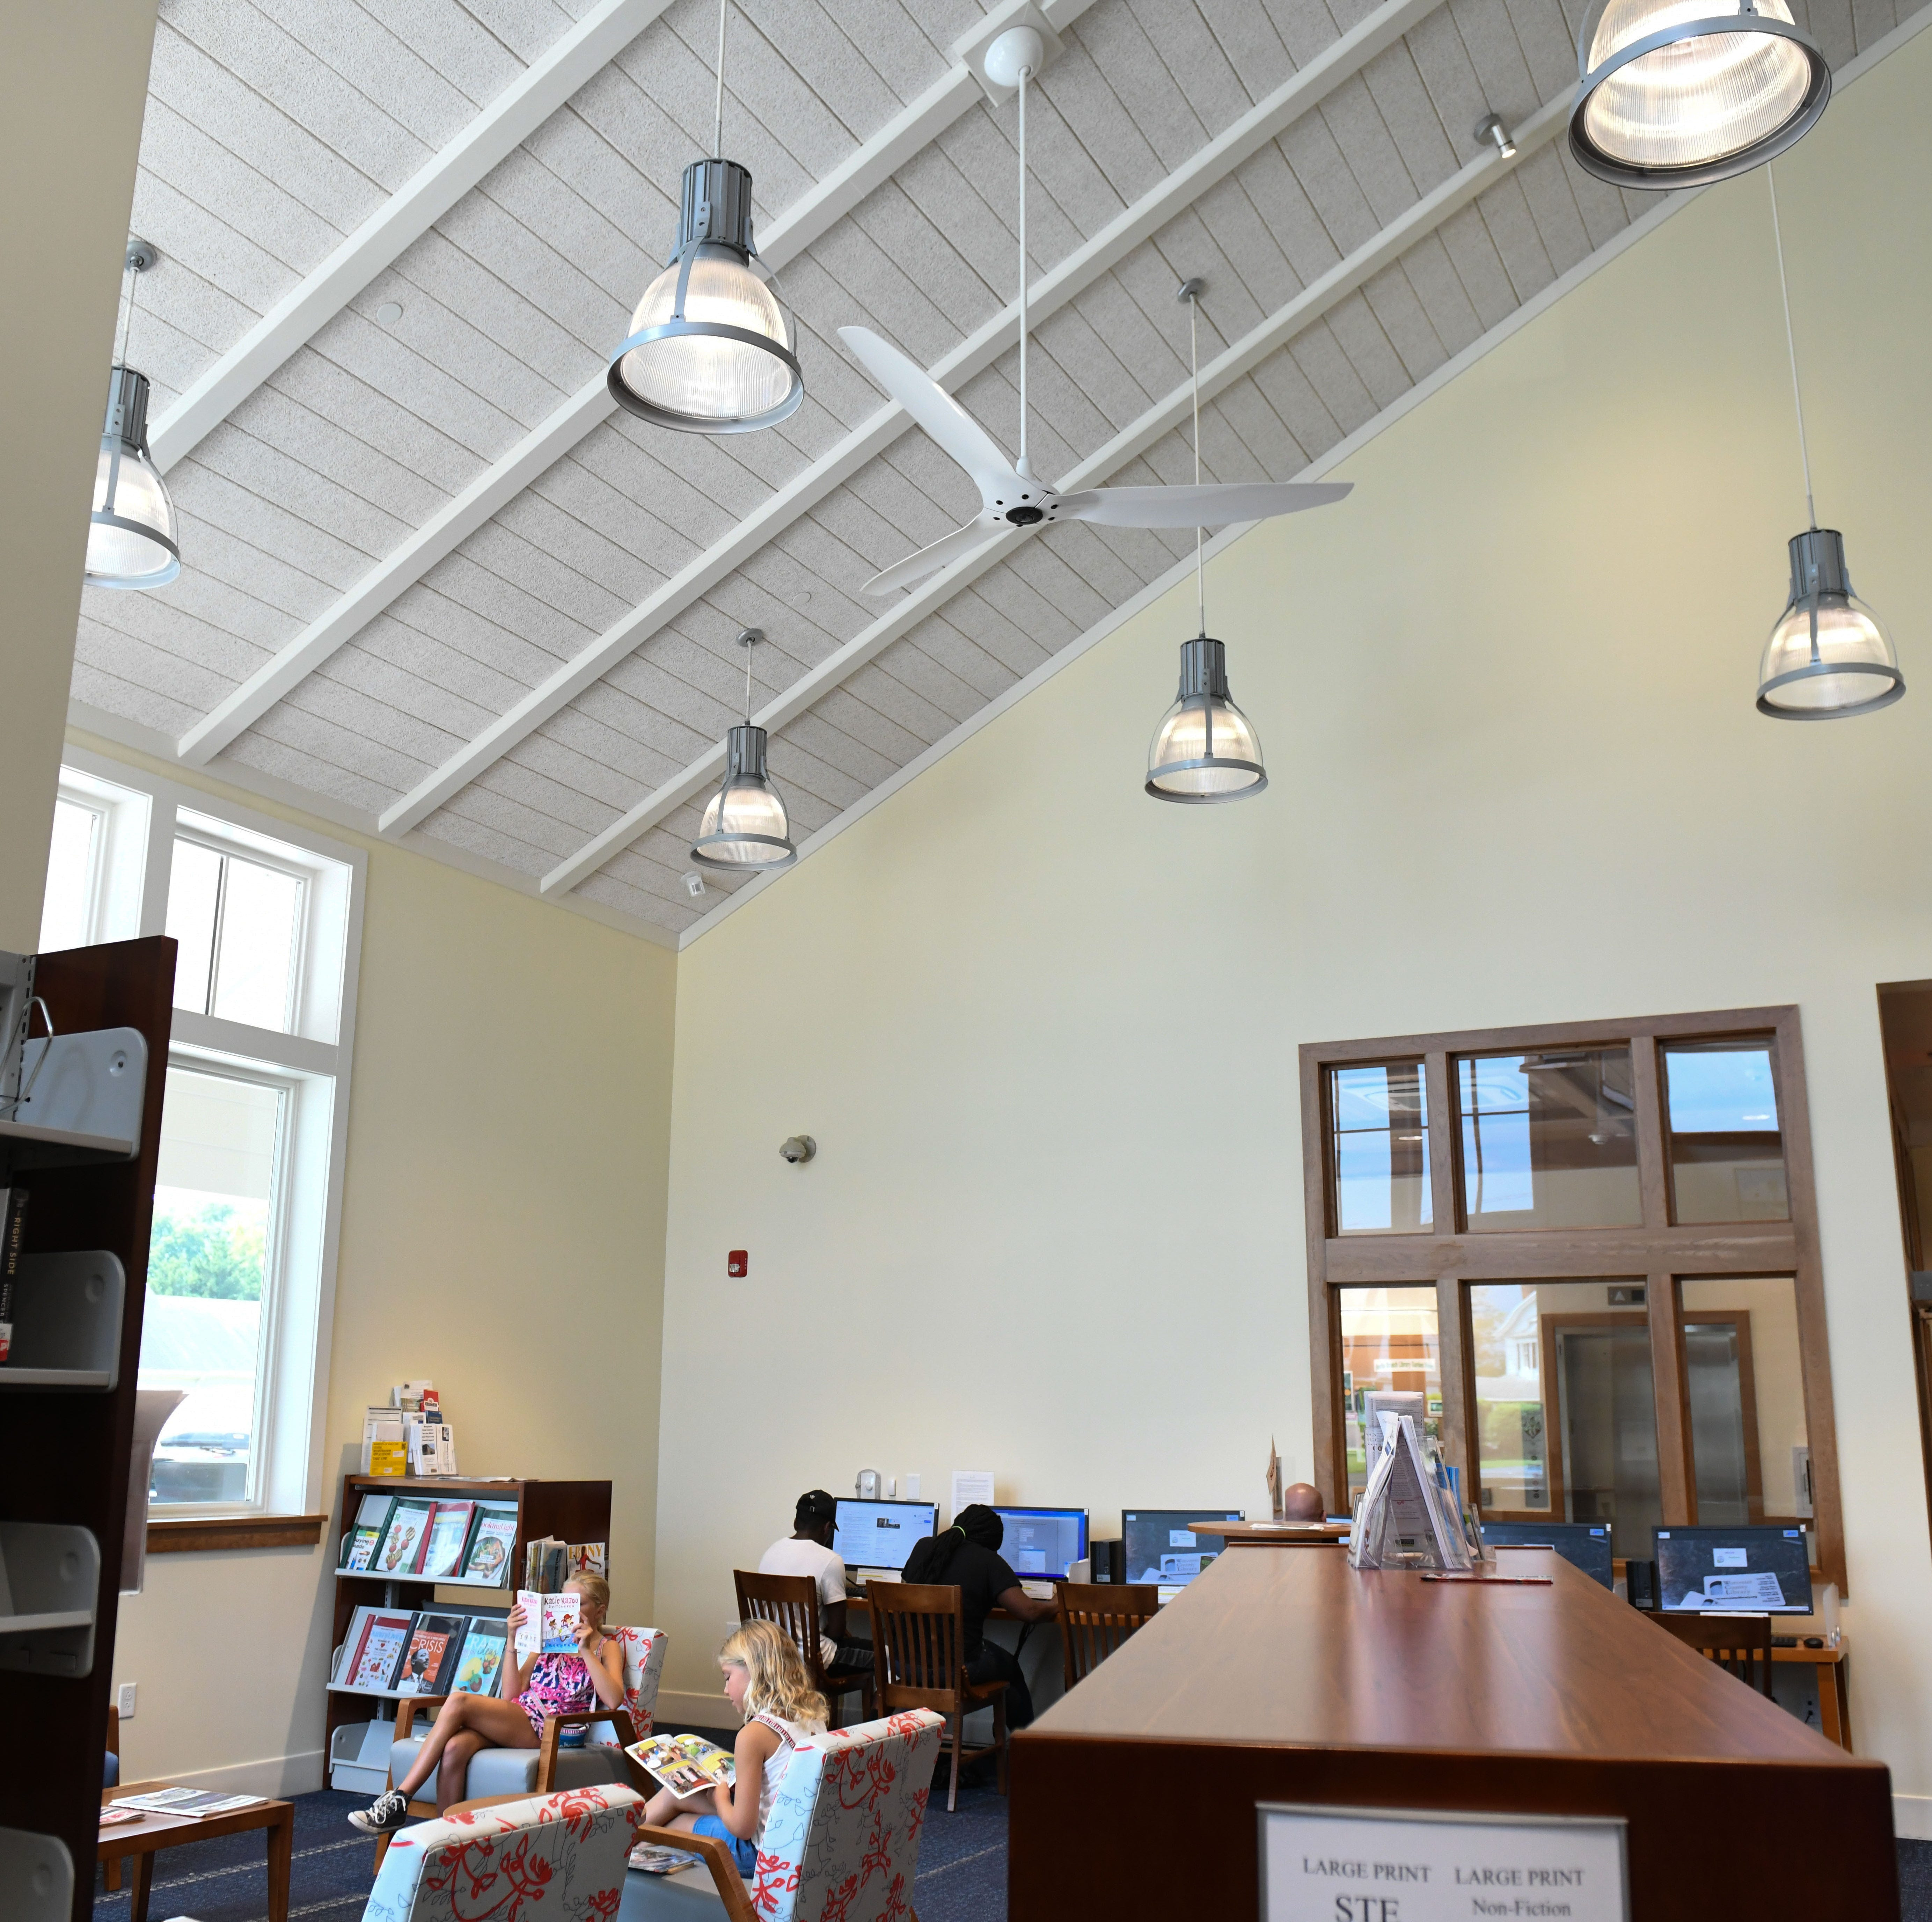 Photos: New Berlin library offers more